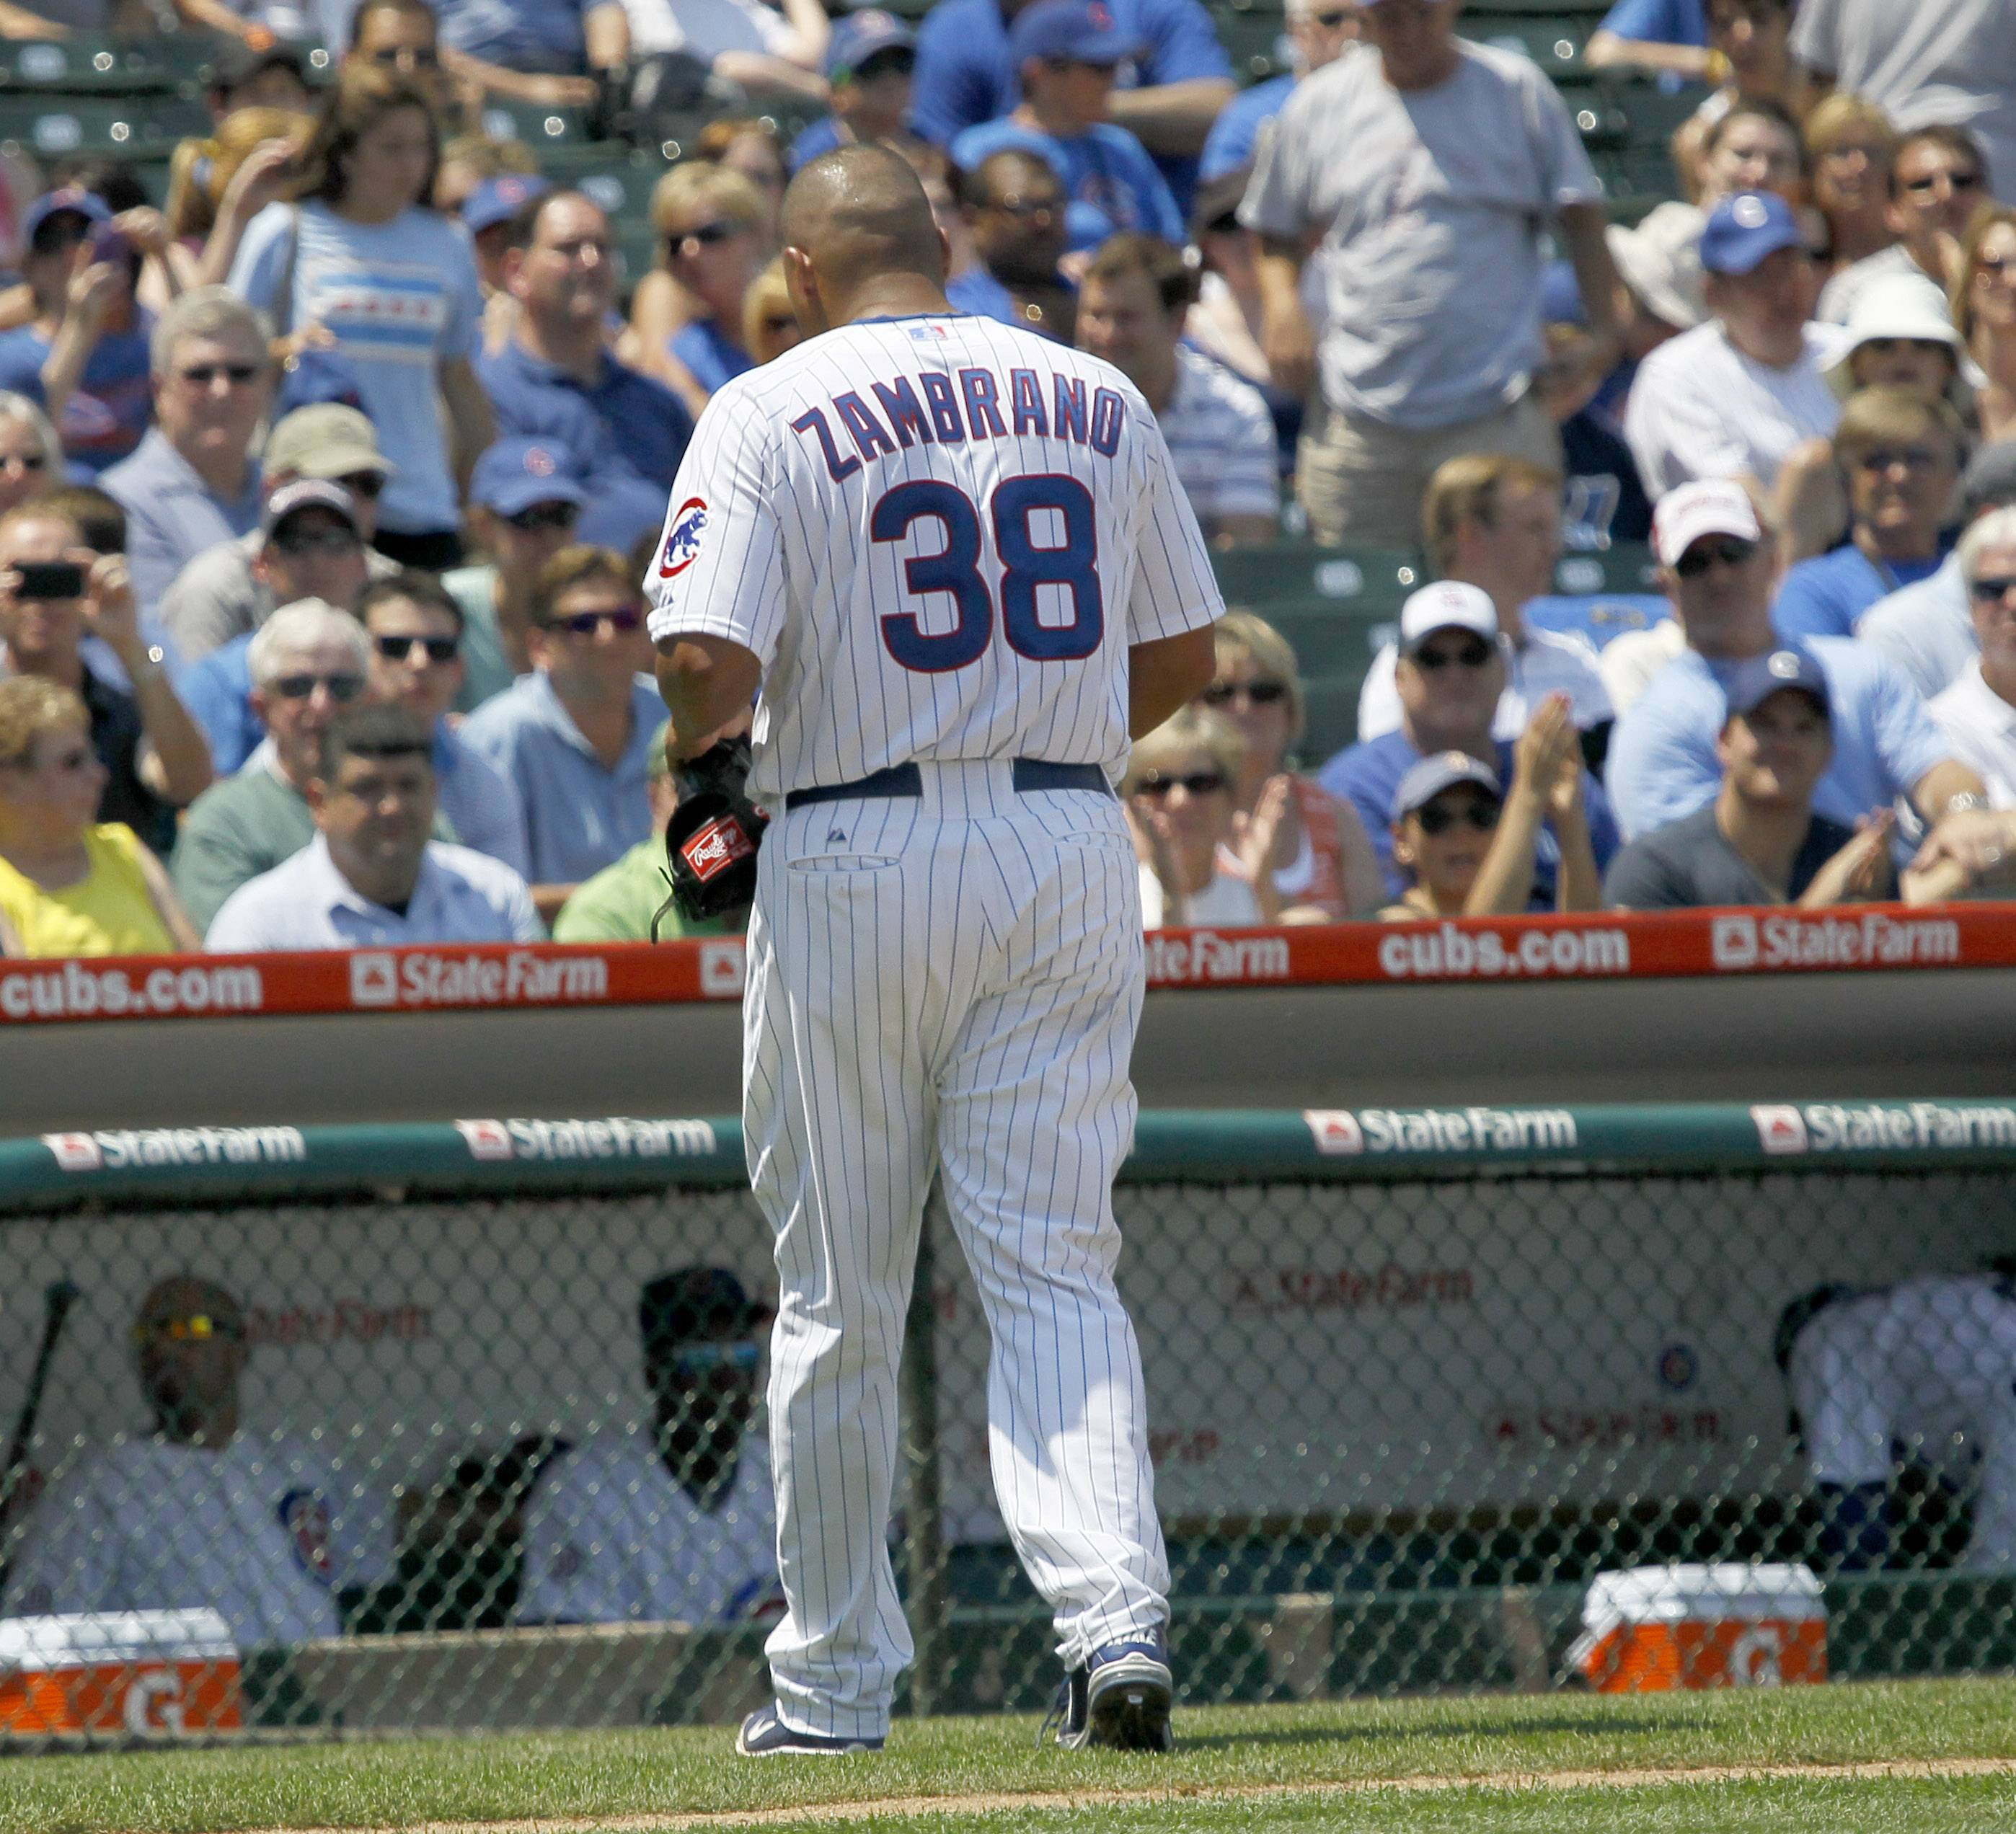 Cubs pitcher Carlos Zambrano was put on the 15-day disabled list today because of soreness in his lower back.